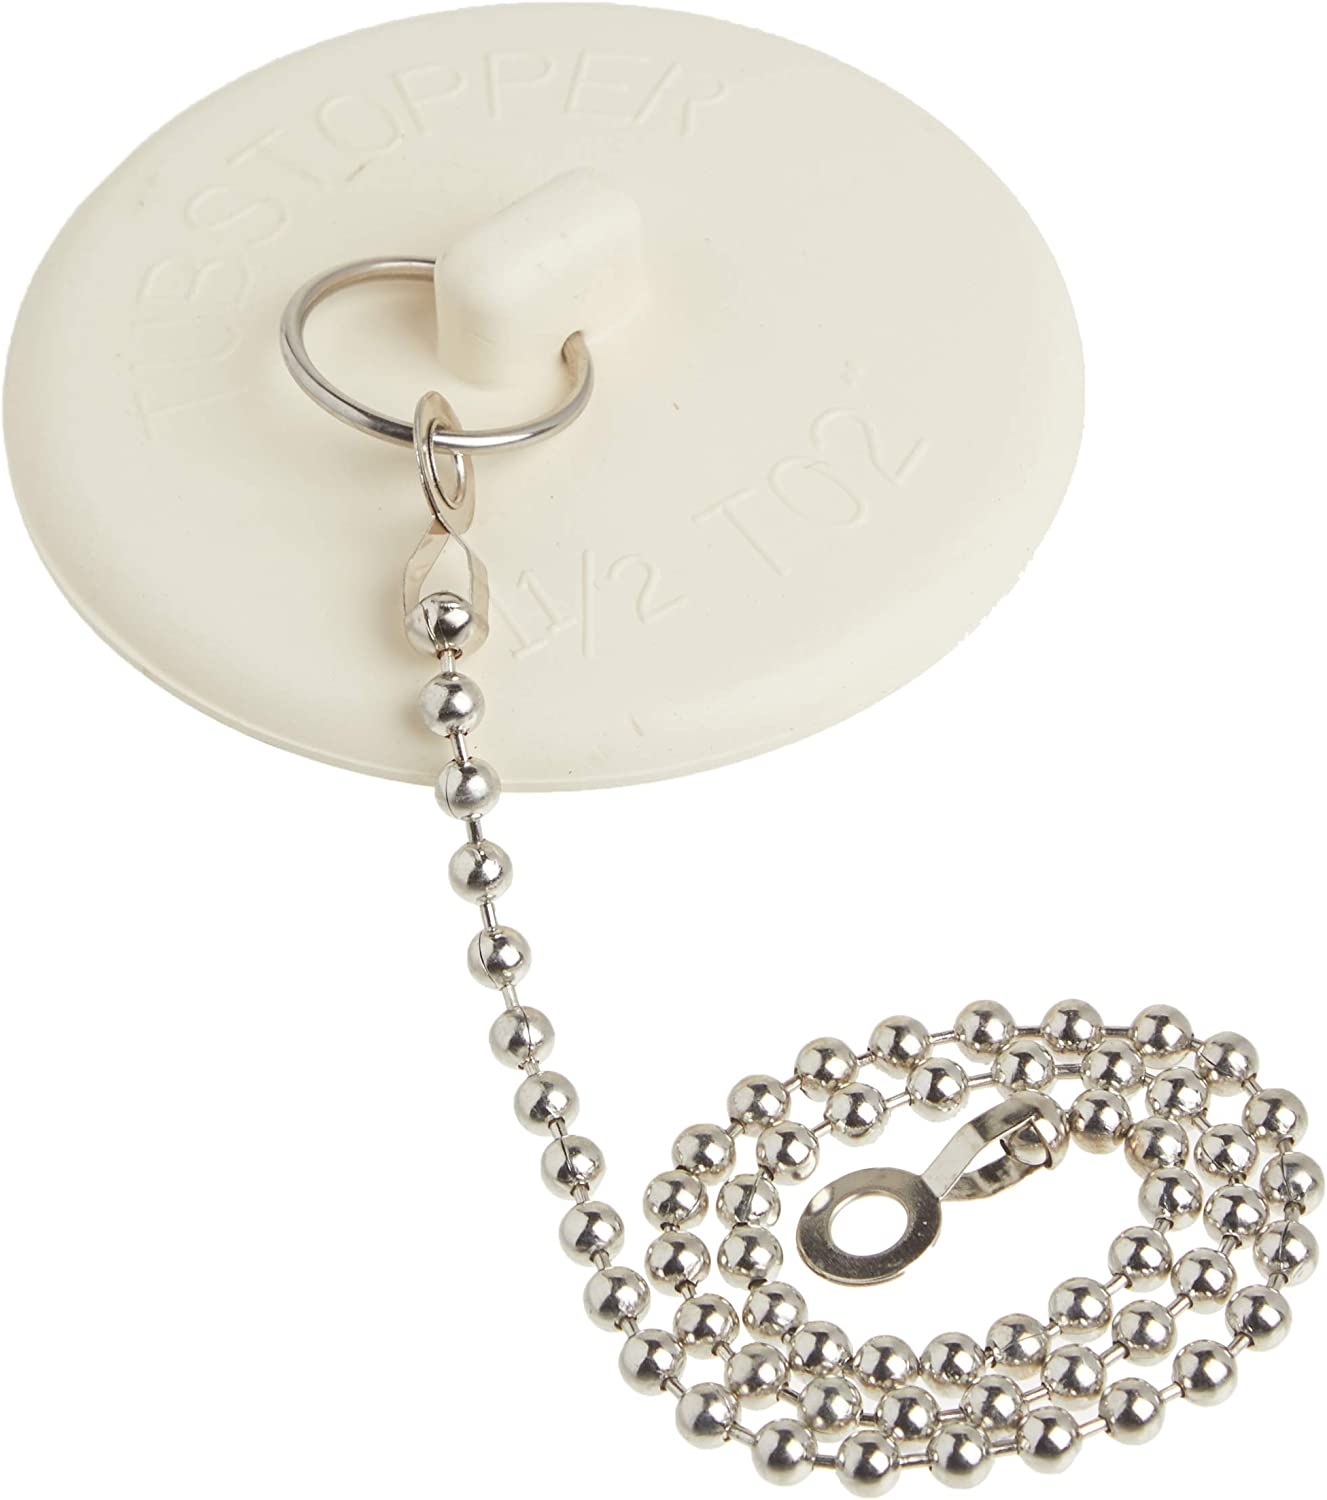 Free Shipping New DANCO Rubber Tub 67% OFF of fixed price Stopper Chain White 80783 with